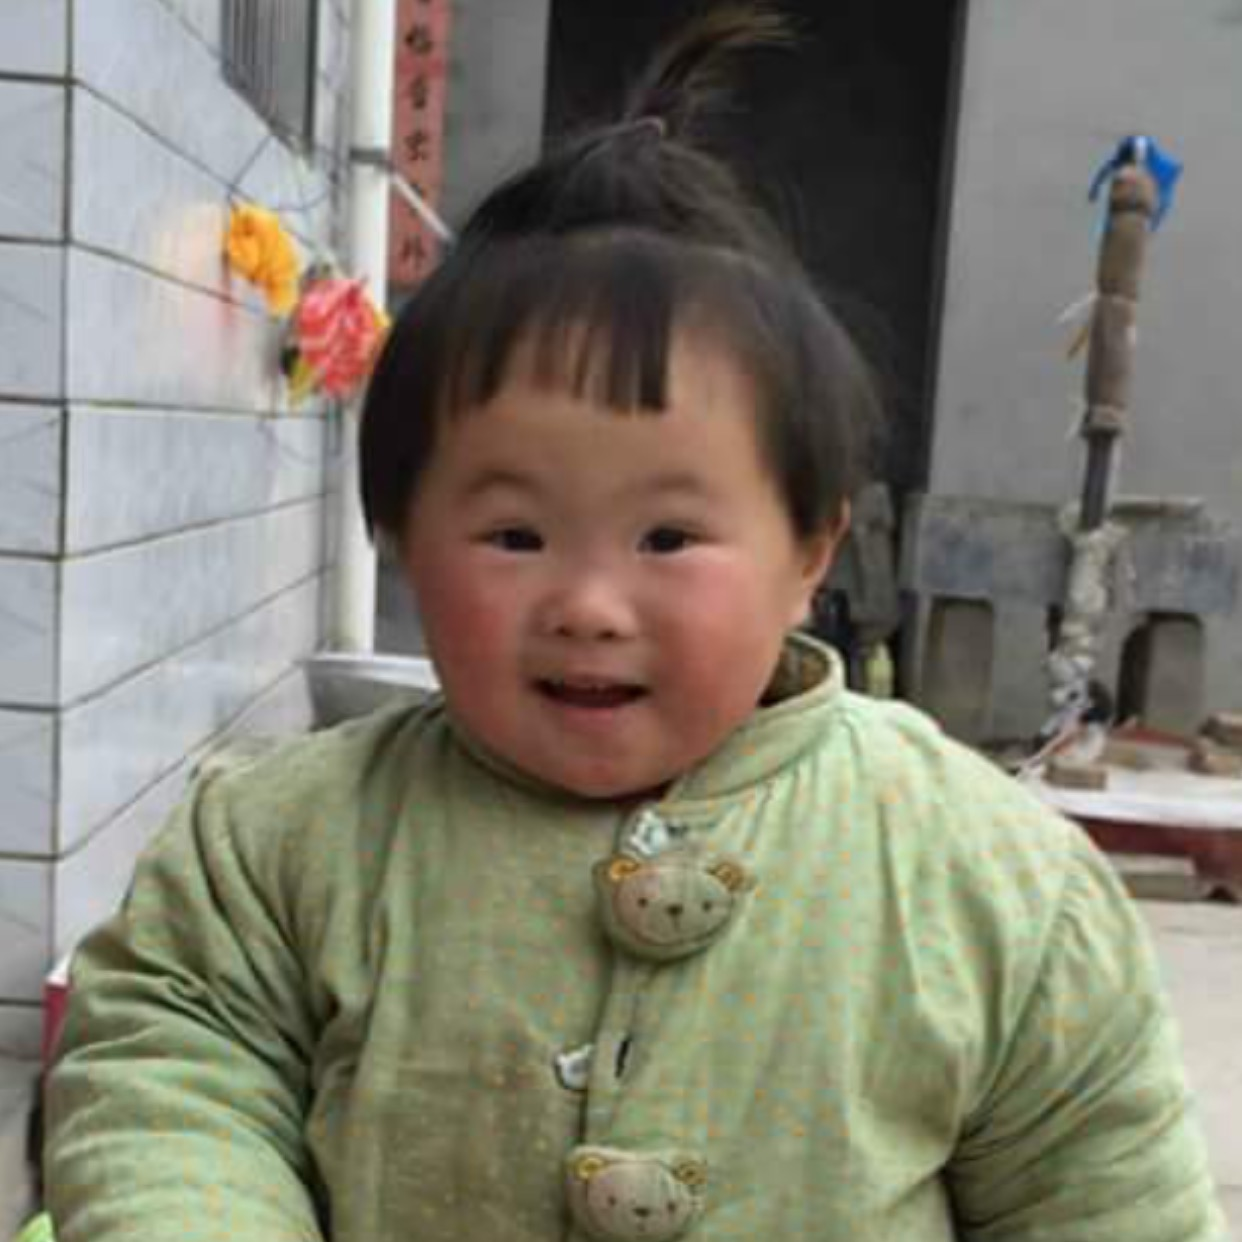 Joy Is An Outgoing, Kind And Generous 3 ½ Yearold Child Who Will Soon Be  Scooped Up From The Foster Home Where She Currently Resides In China By Her